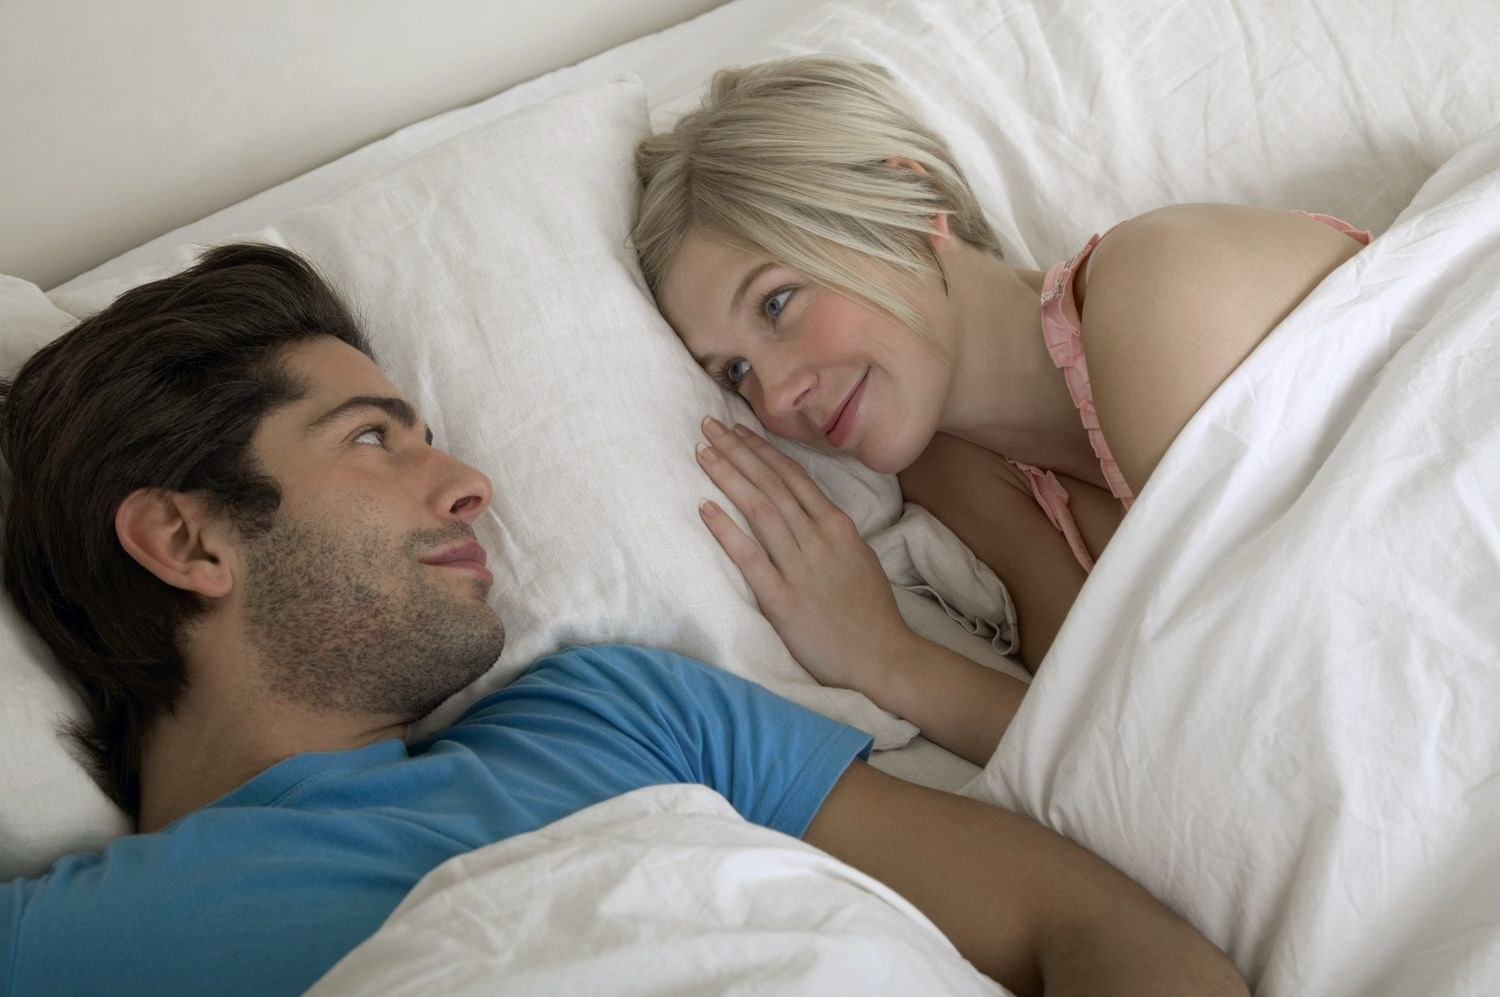 sex-love-life-2013-04-young-couple-in-bed-main.jpg